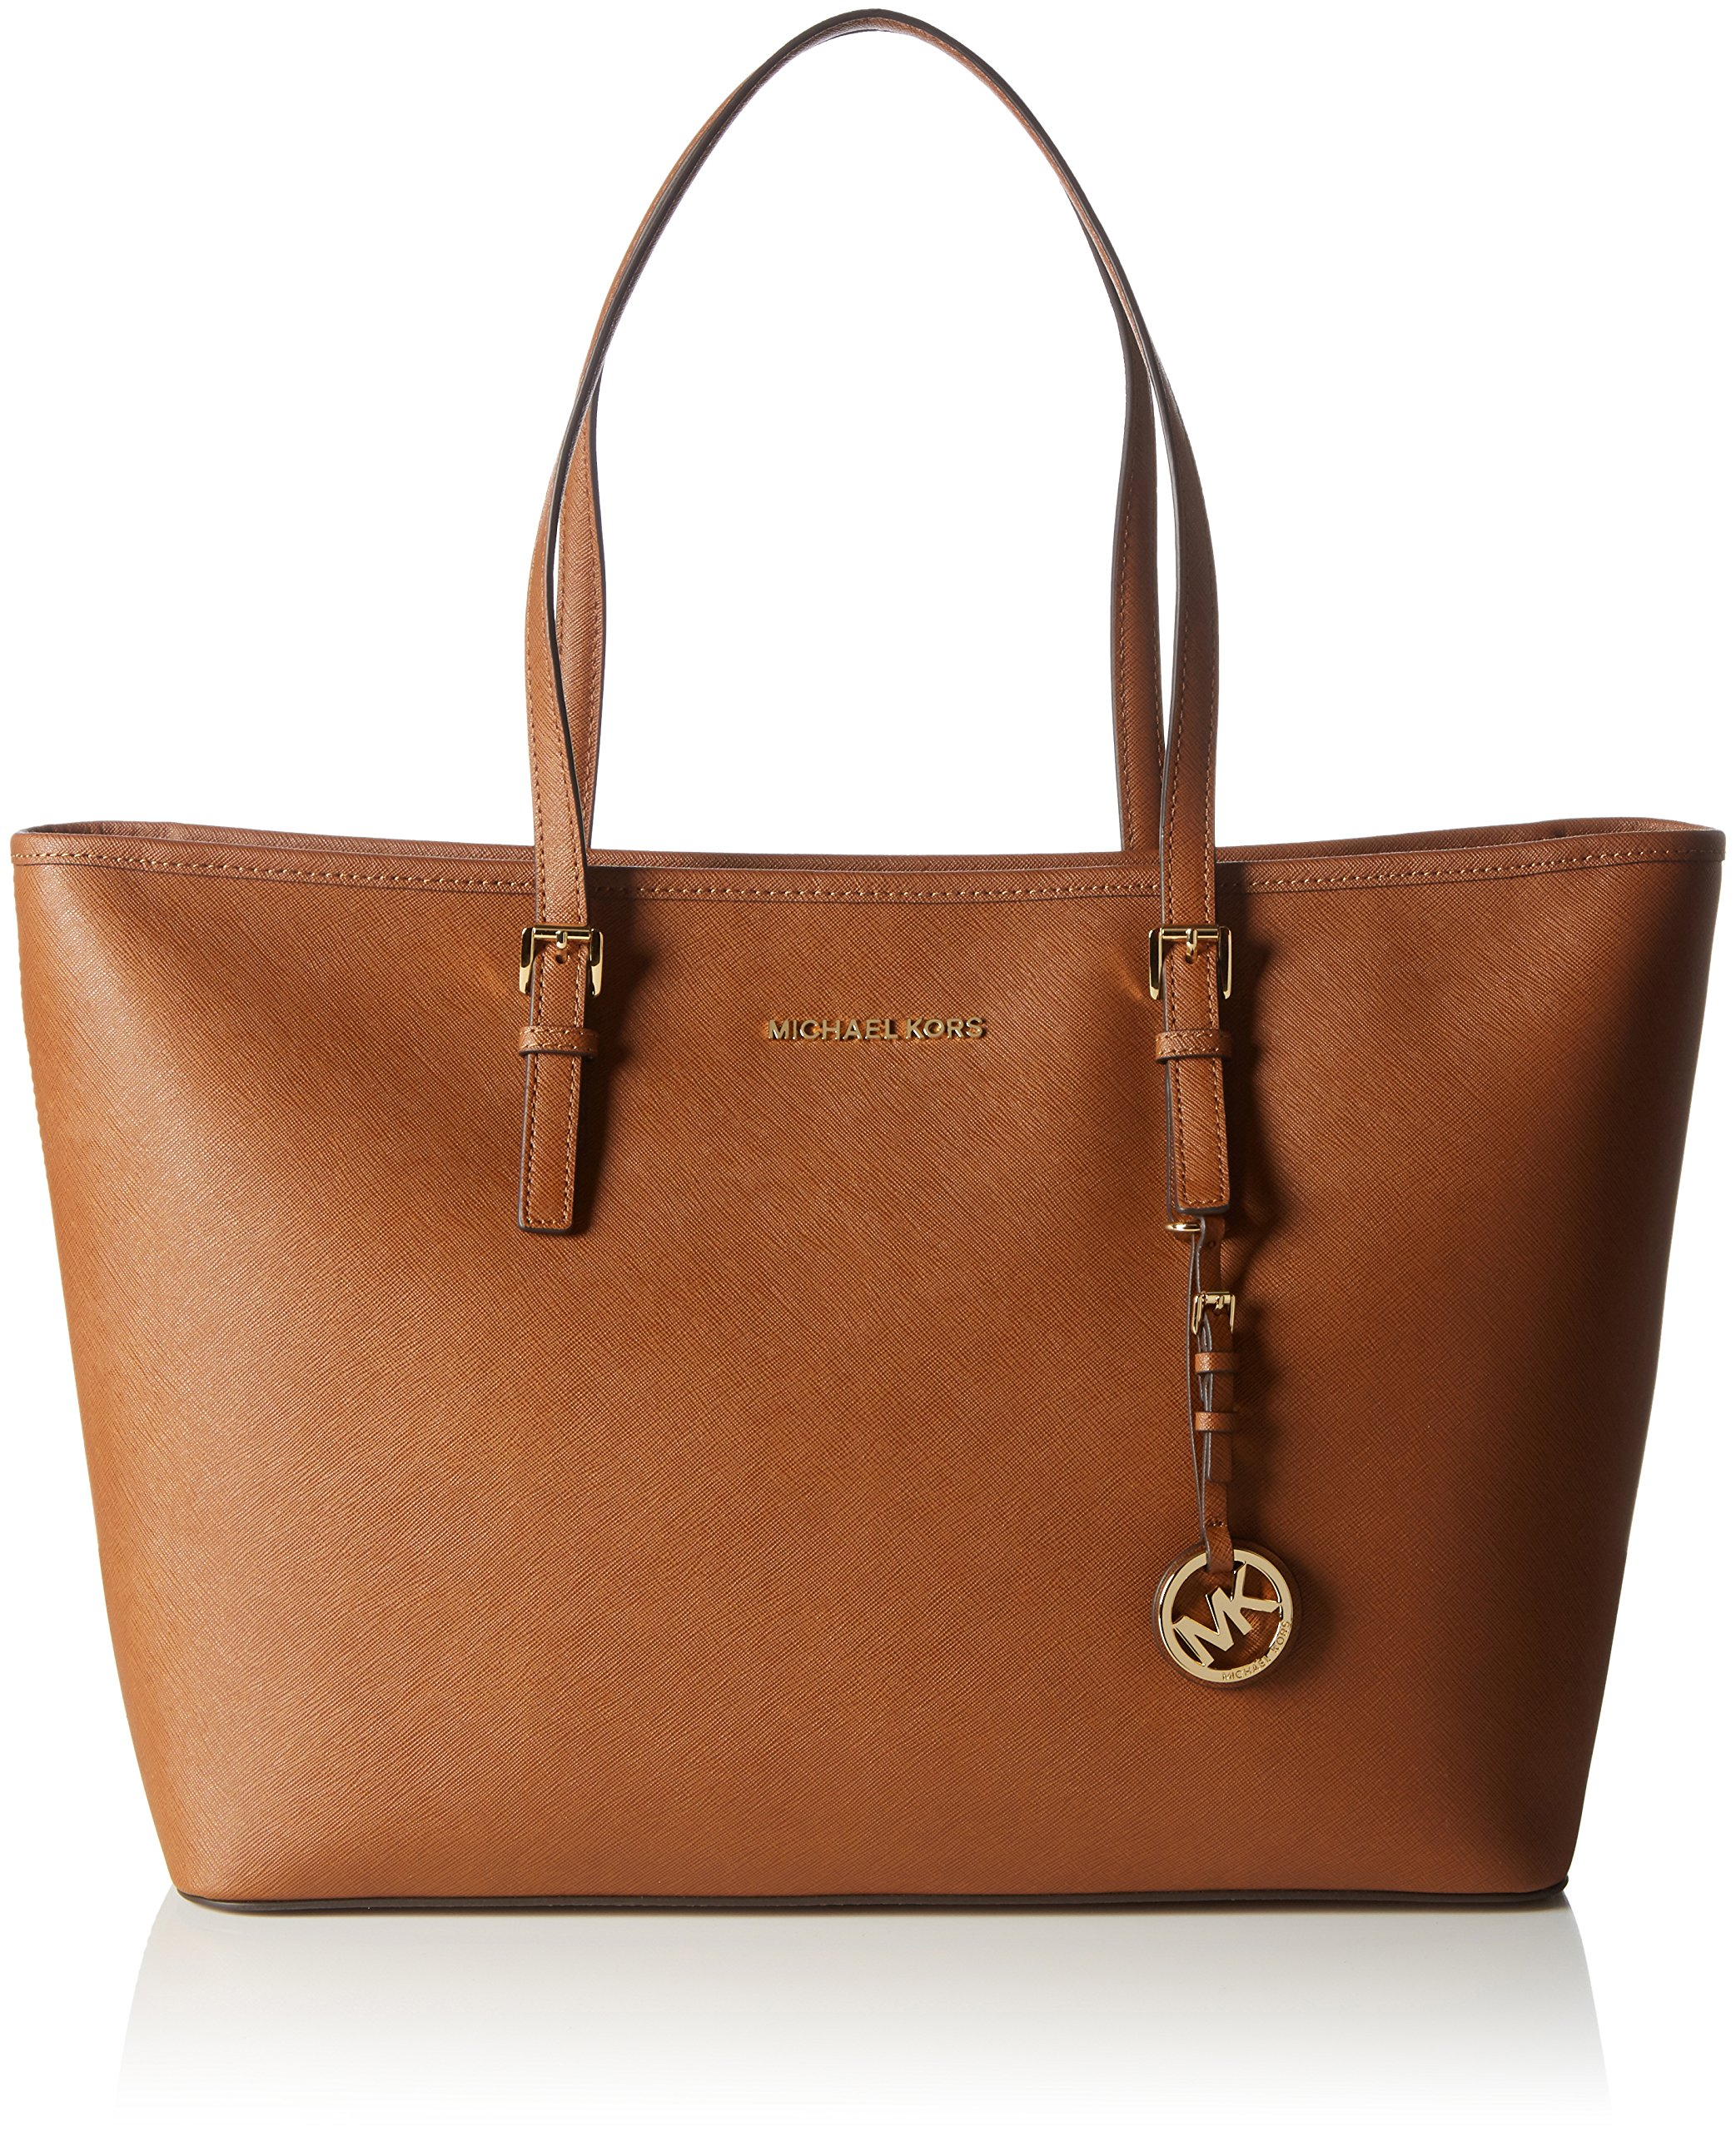 035d8fb76819 Michael Kors Jet Set Travel Medium Saffiano Leather Top-Zip Tote, michael  kors jet